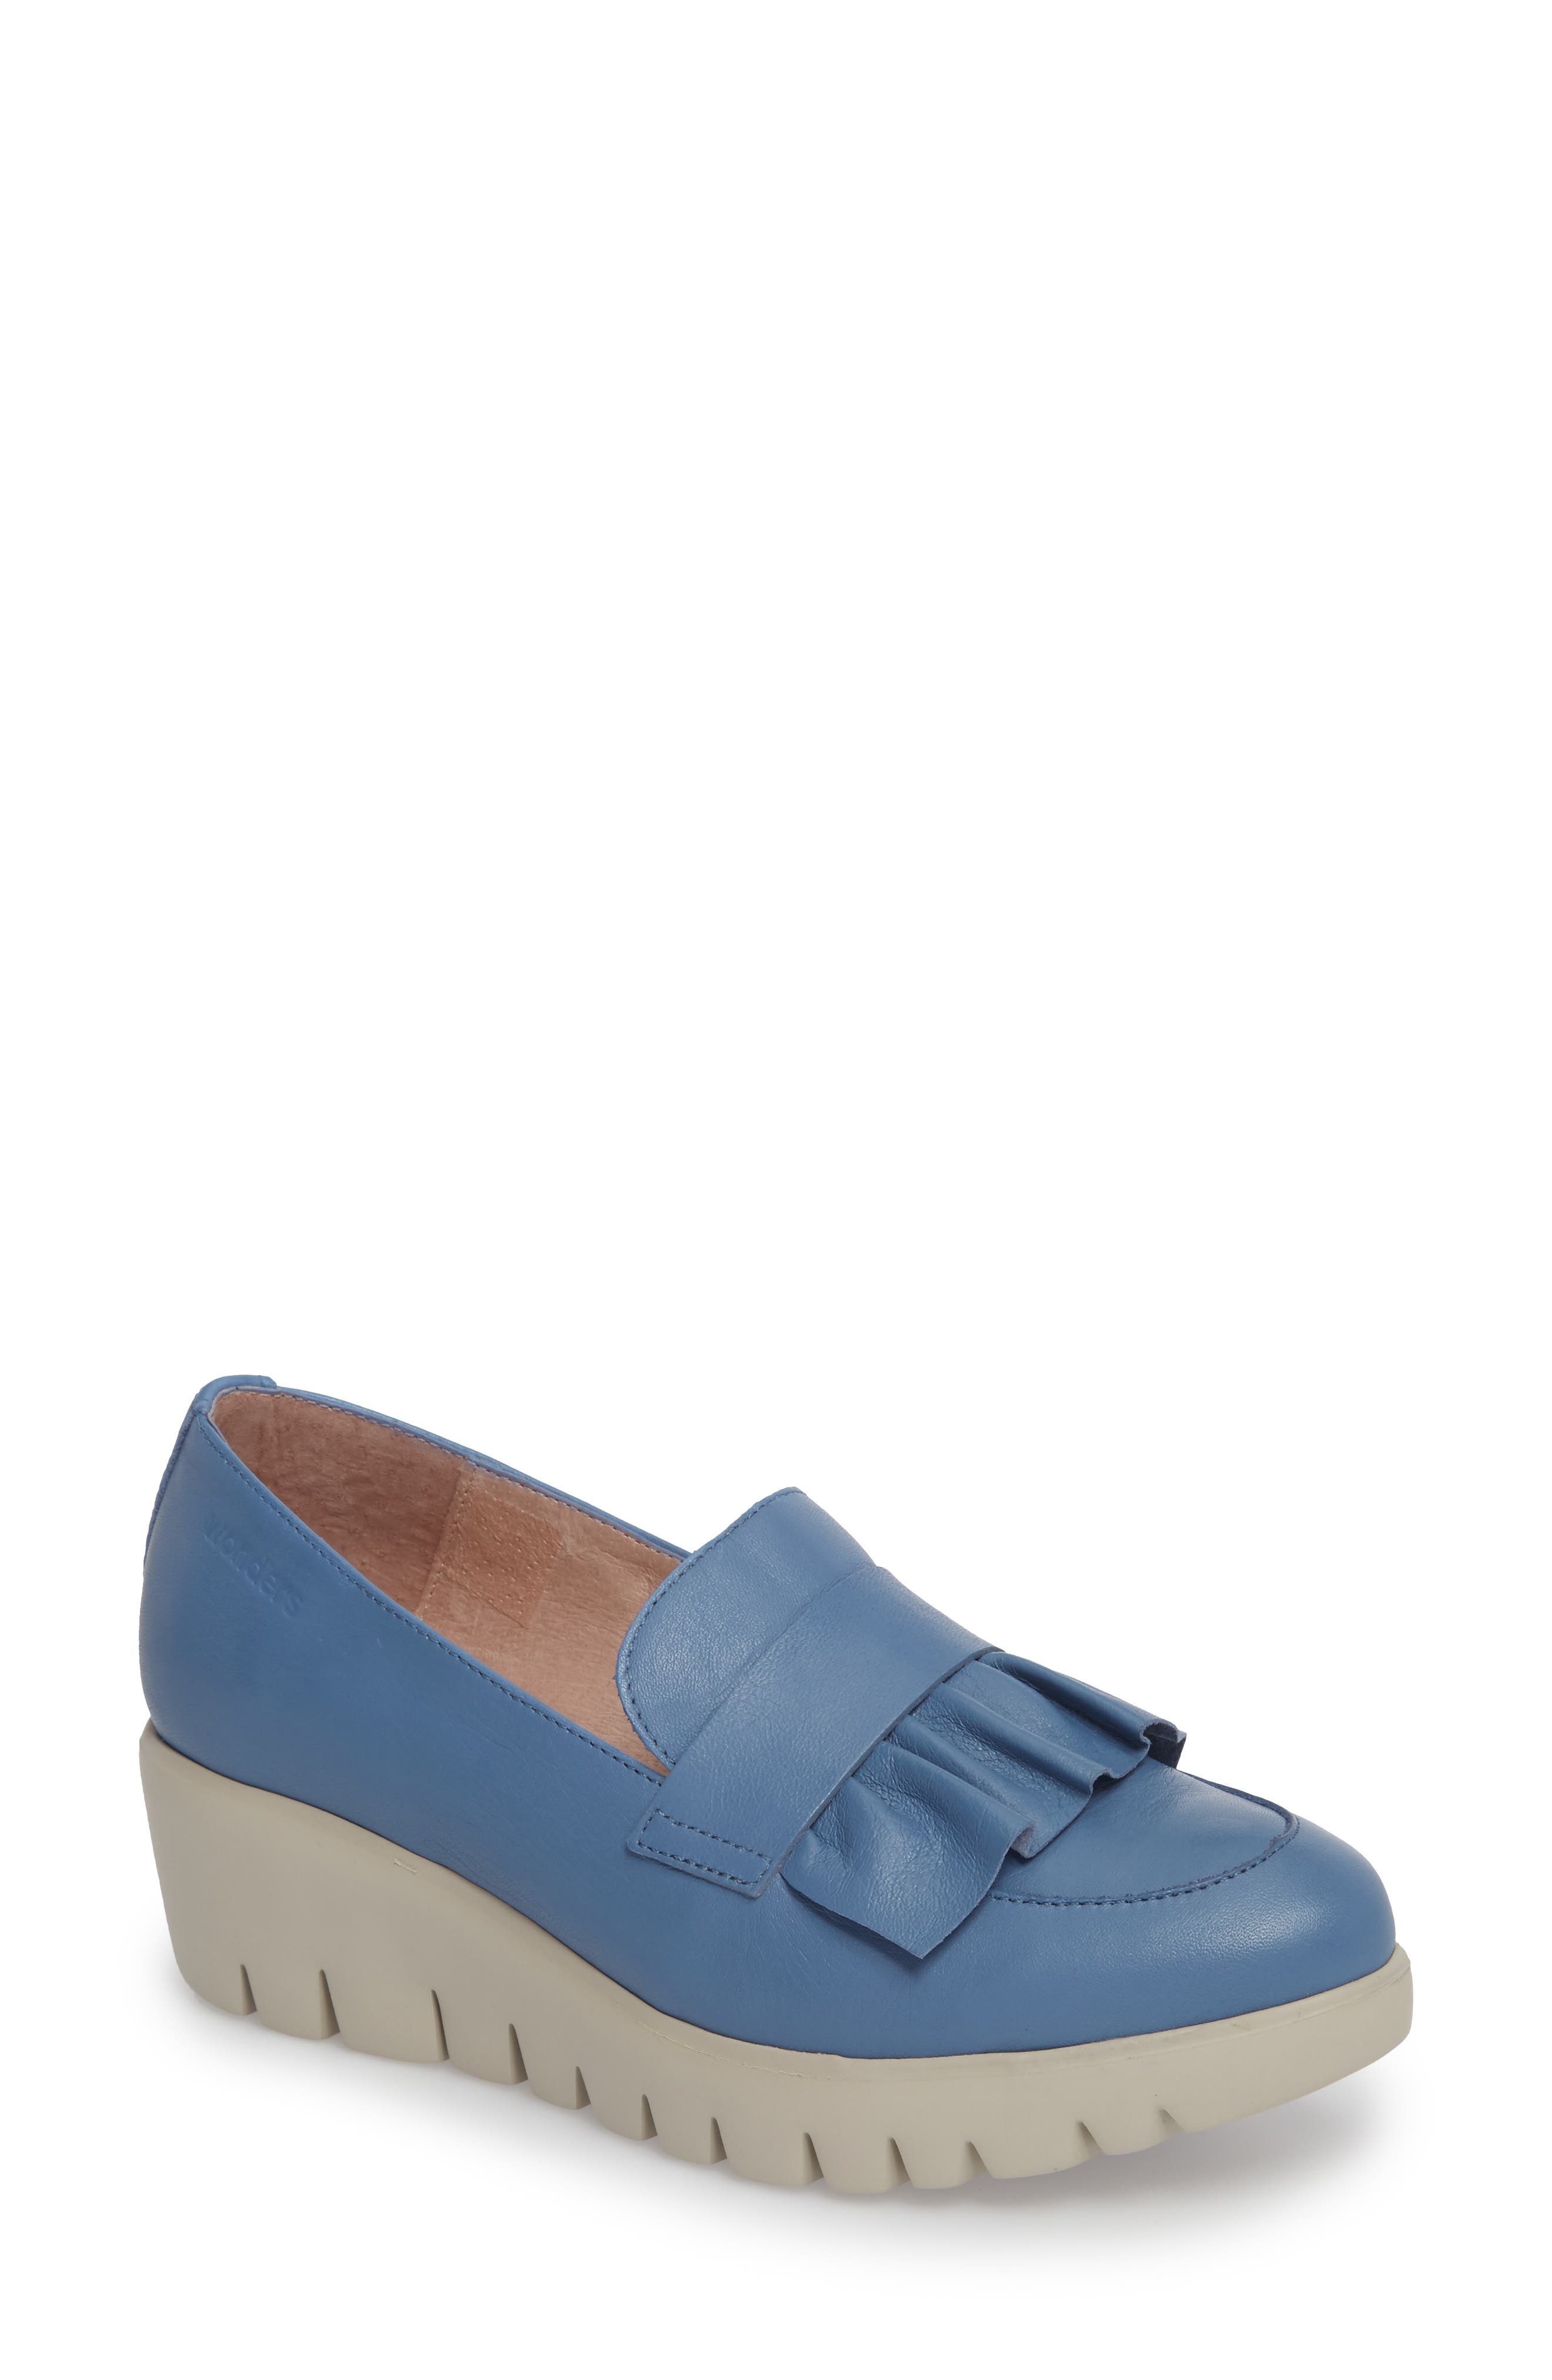 Loafer Wedge,                         Main,                         color, Jeans Leather